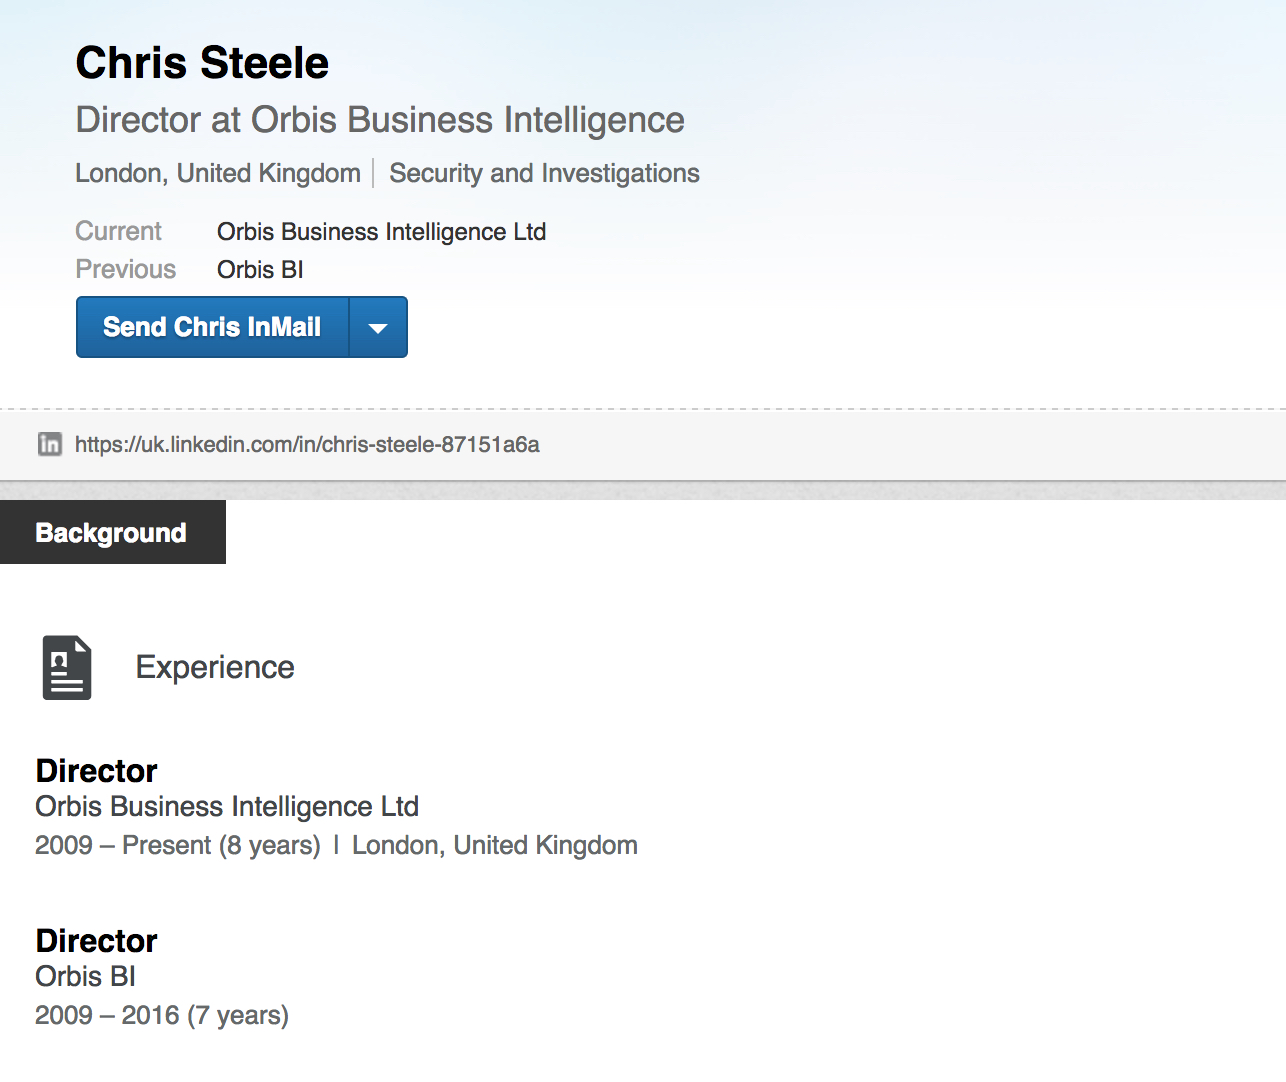 christopher steele, chris steele, christopher steele british agent, christopher steele linkedin, christopher steele donald trump